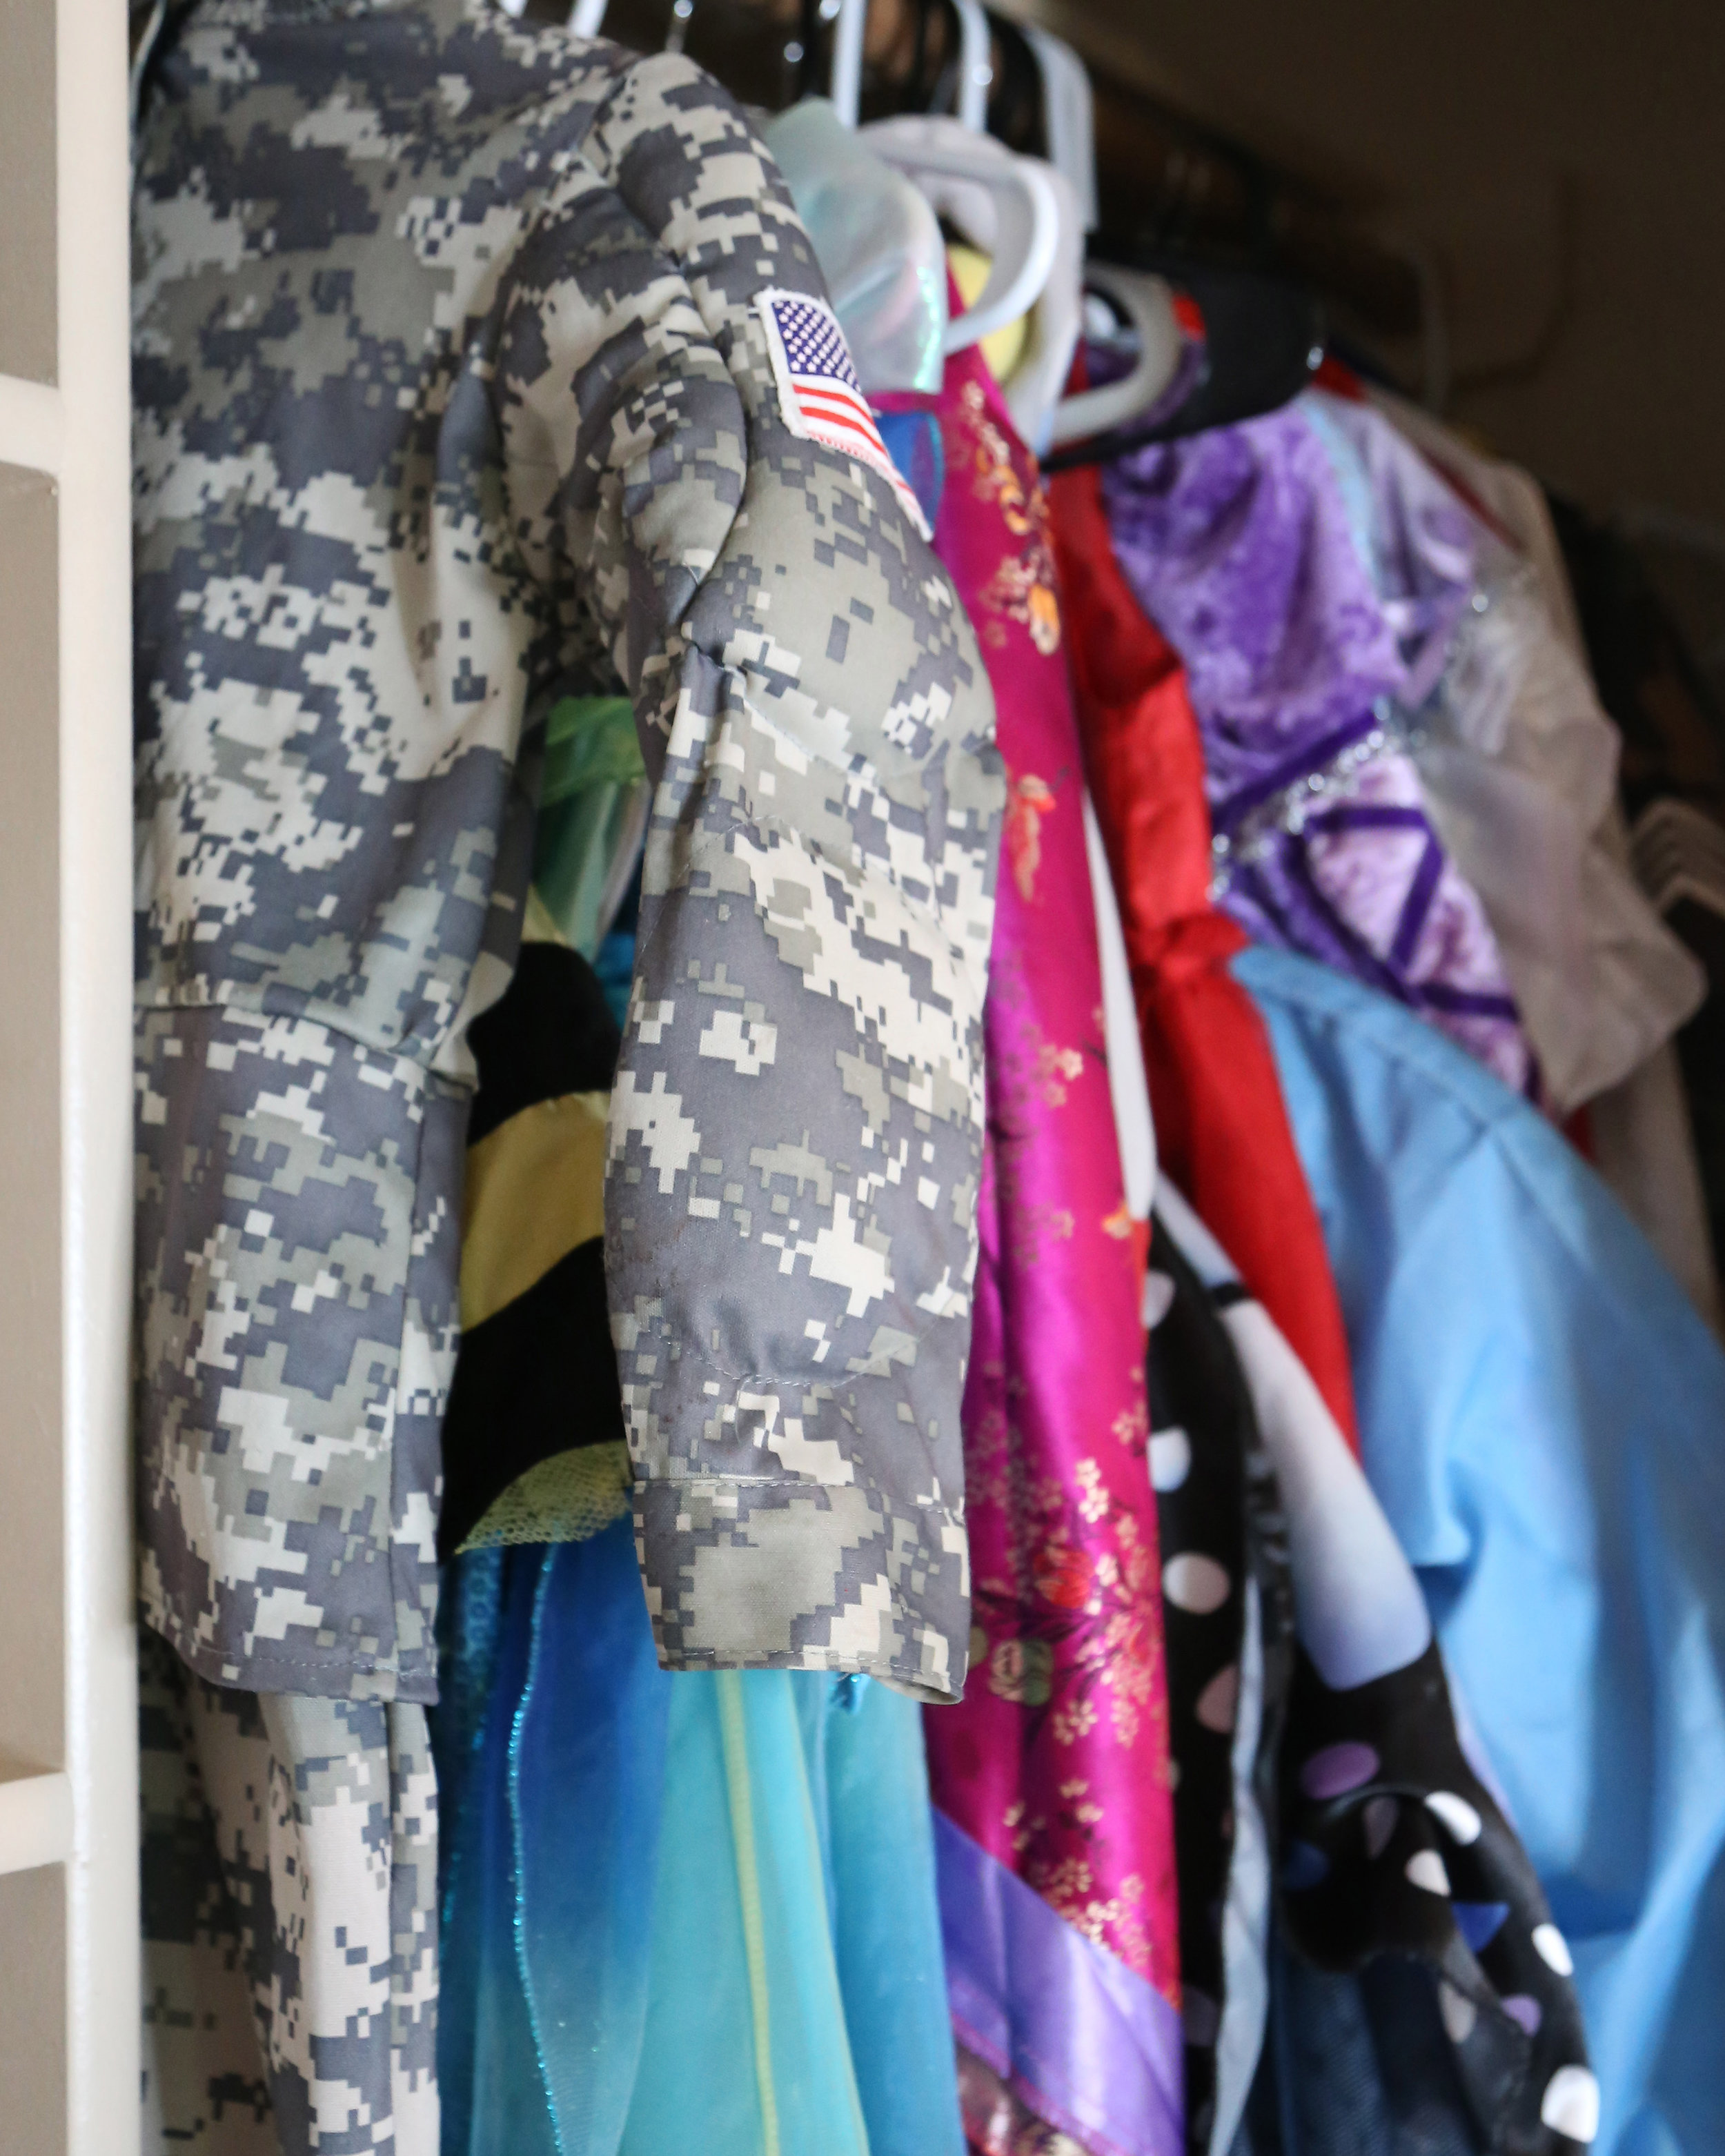 DRESS UP CLOSET: I've collected costumes for years and this closet gets a lot of action.    Hats, Wigs, Shoes, Accessories, Costumes for all sizes (even adults).    I love to check out thrift stores for funny things and kids consigment shops at Halloween time to freshen up the old dress up closet.